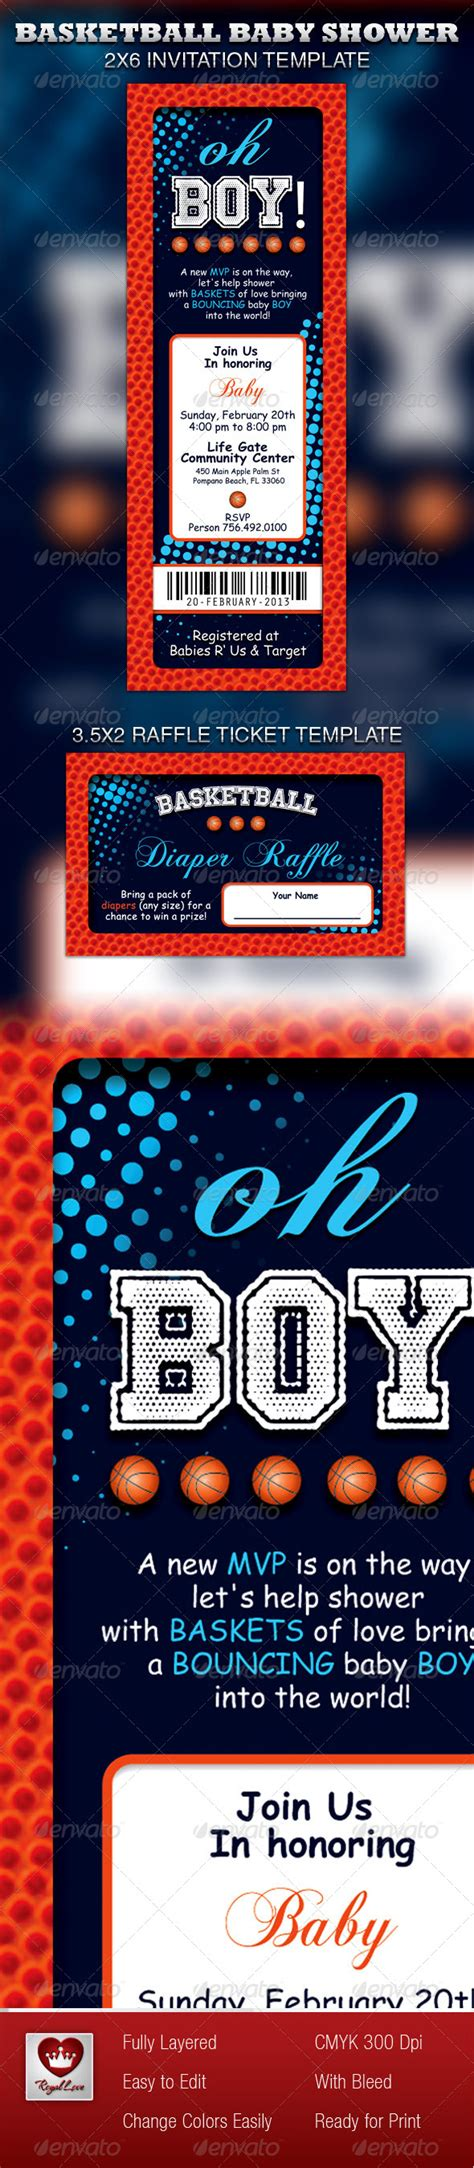 Basketball Baby Shower Invitation Raffle Ticket Graphicriver Basketball Baby Shower Invitation Templates